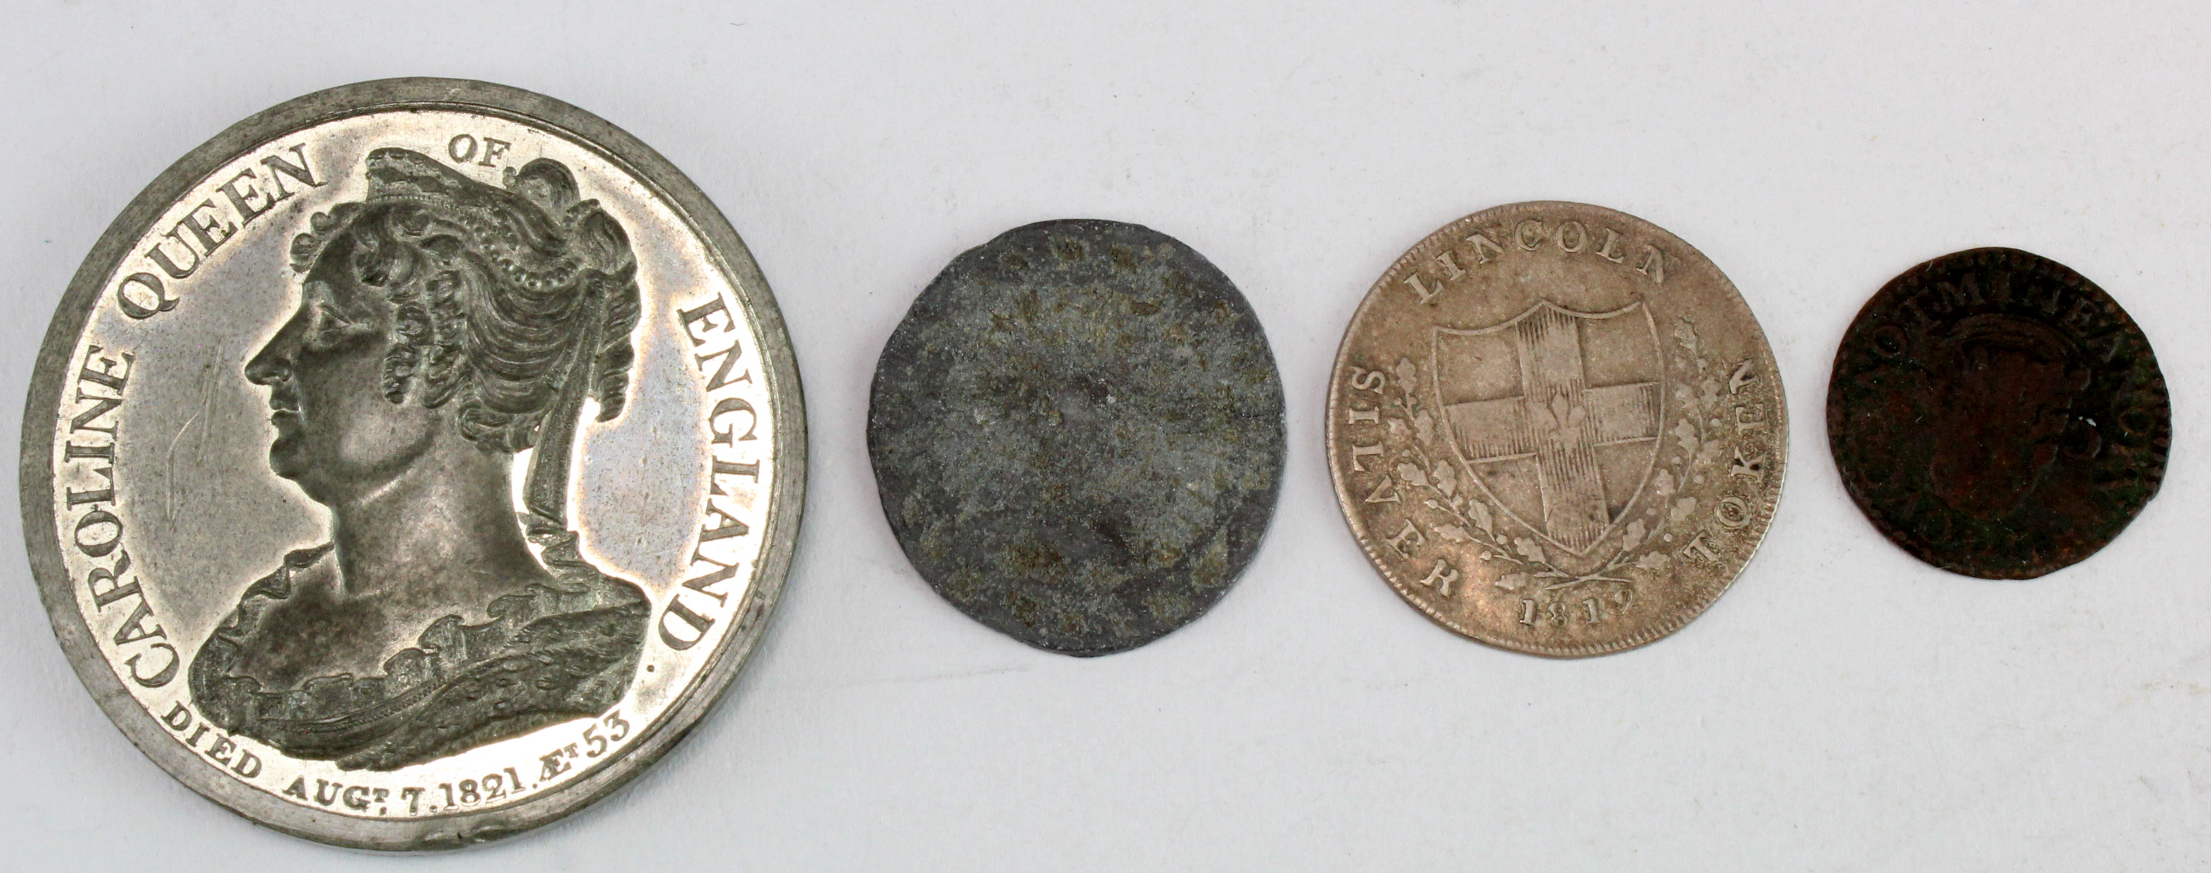 British Tokens & Medals (4): A very rare 17th token: Dickinson 'Uncertain' #65 'TOVCH NOT MINE